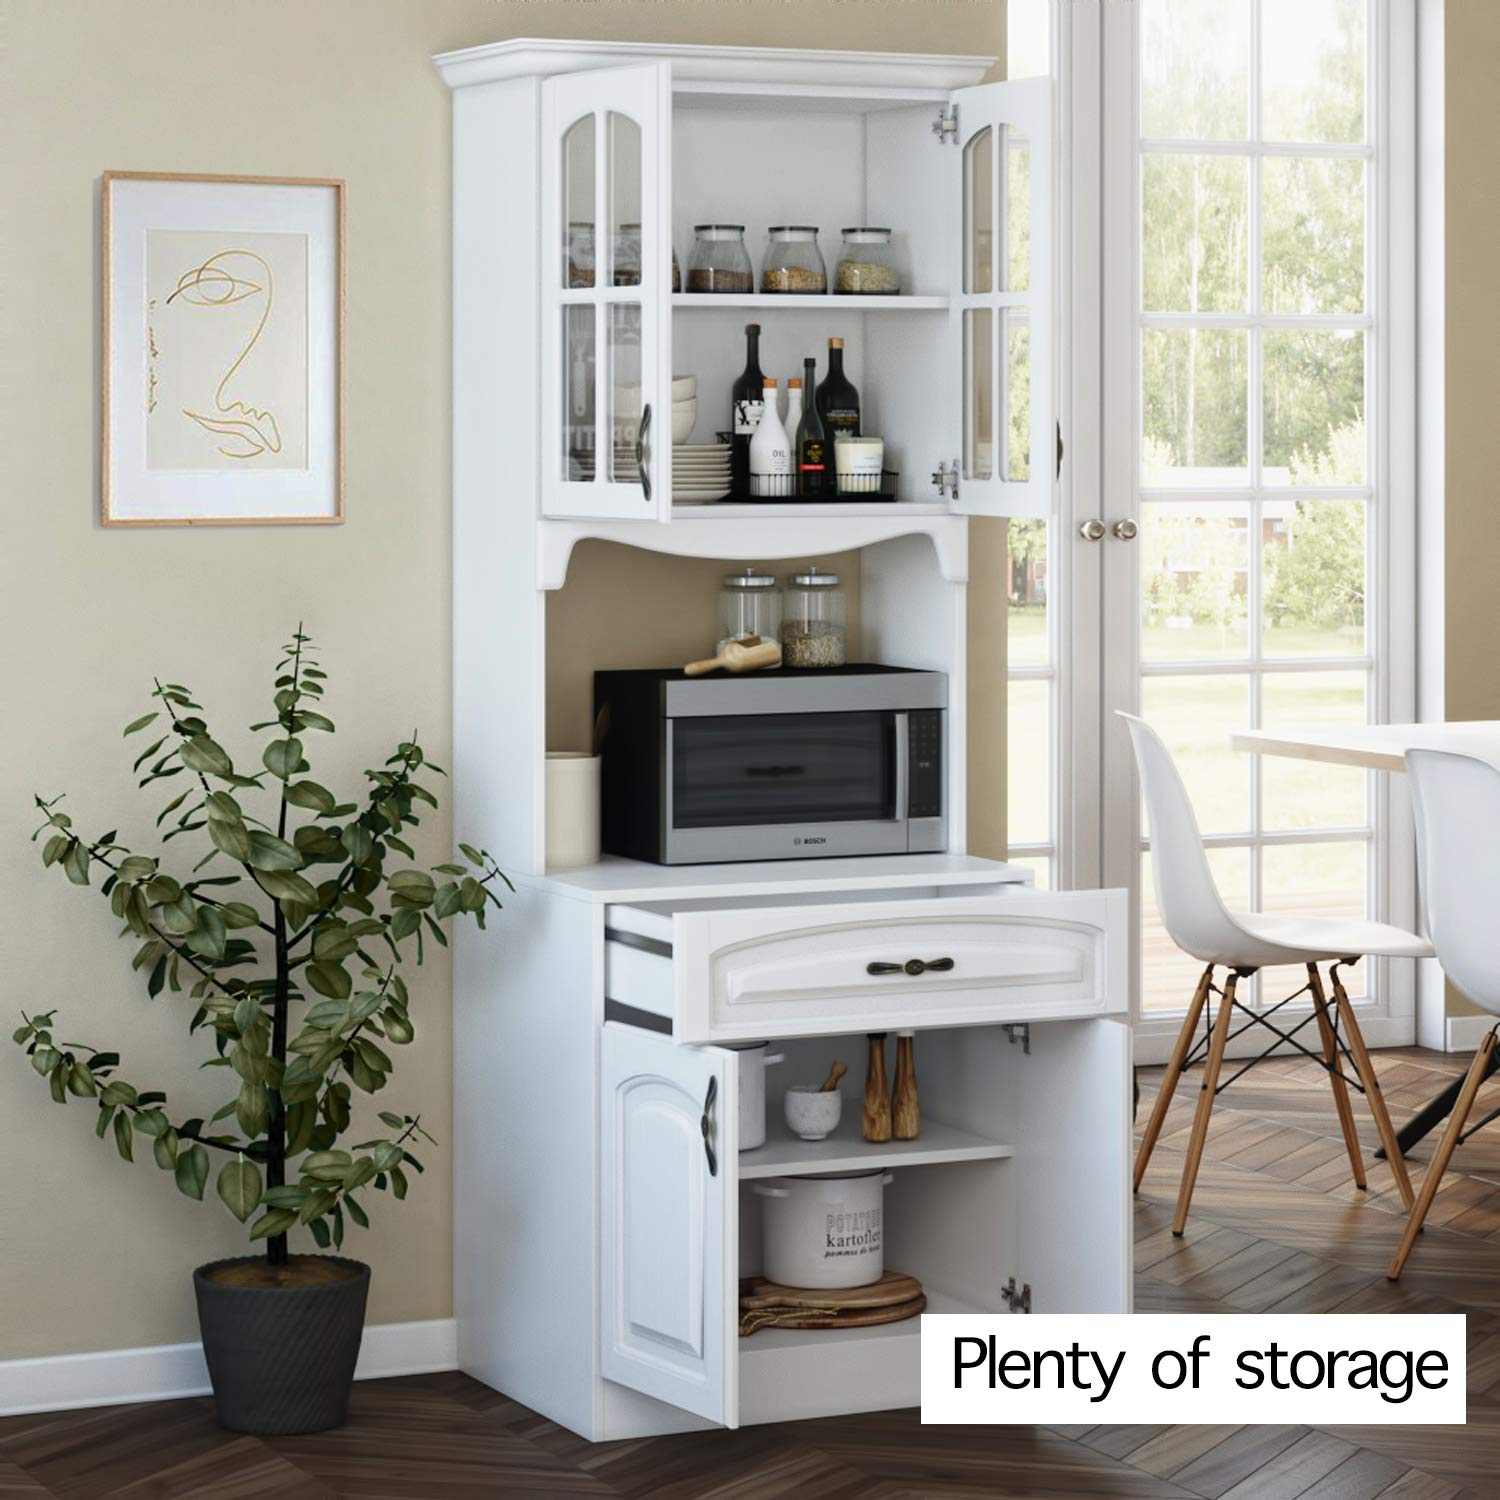 Furniture Pantry Cabinet Kitchen Cabinet With Storage Shelves And Microwave Stand Kitchen Storage Cabinet Easy Installation Kitchen Furniture Kitchen China Cabinet Kitchen And Pantry Hutch Cabinet Home Kitchen